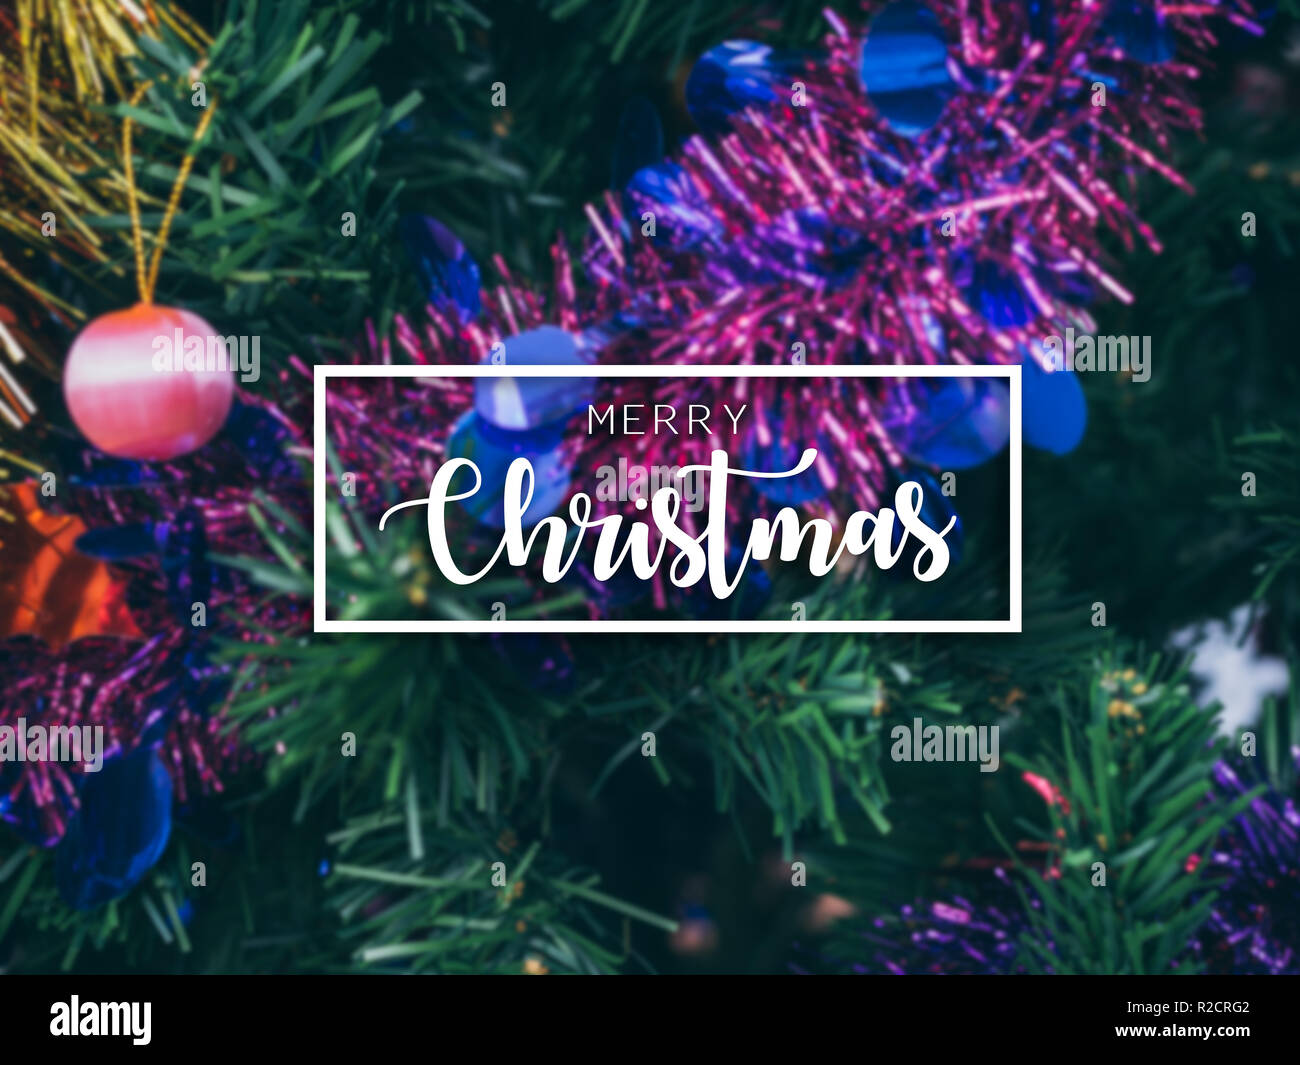 Typographical Merry Christmas Banner. Colorful Christmas background with blurred Christmas ornament prop decoration on Christmas tree background. - Stock Image